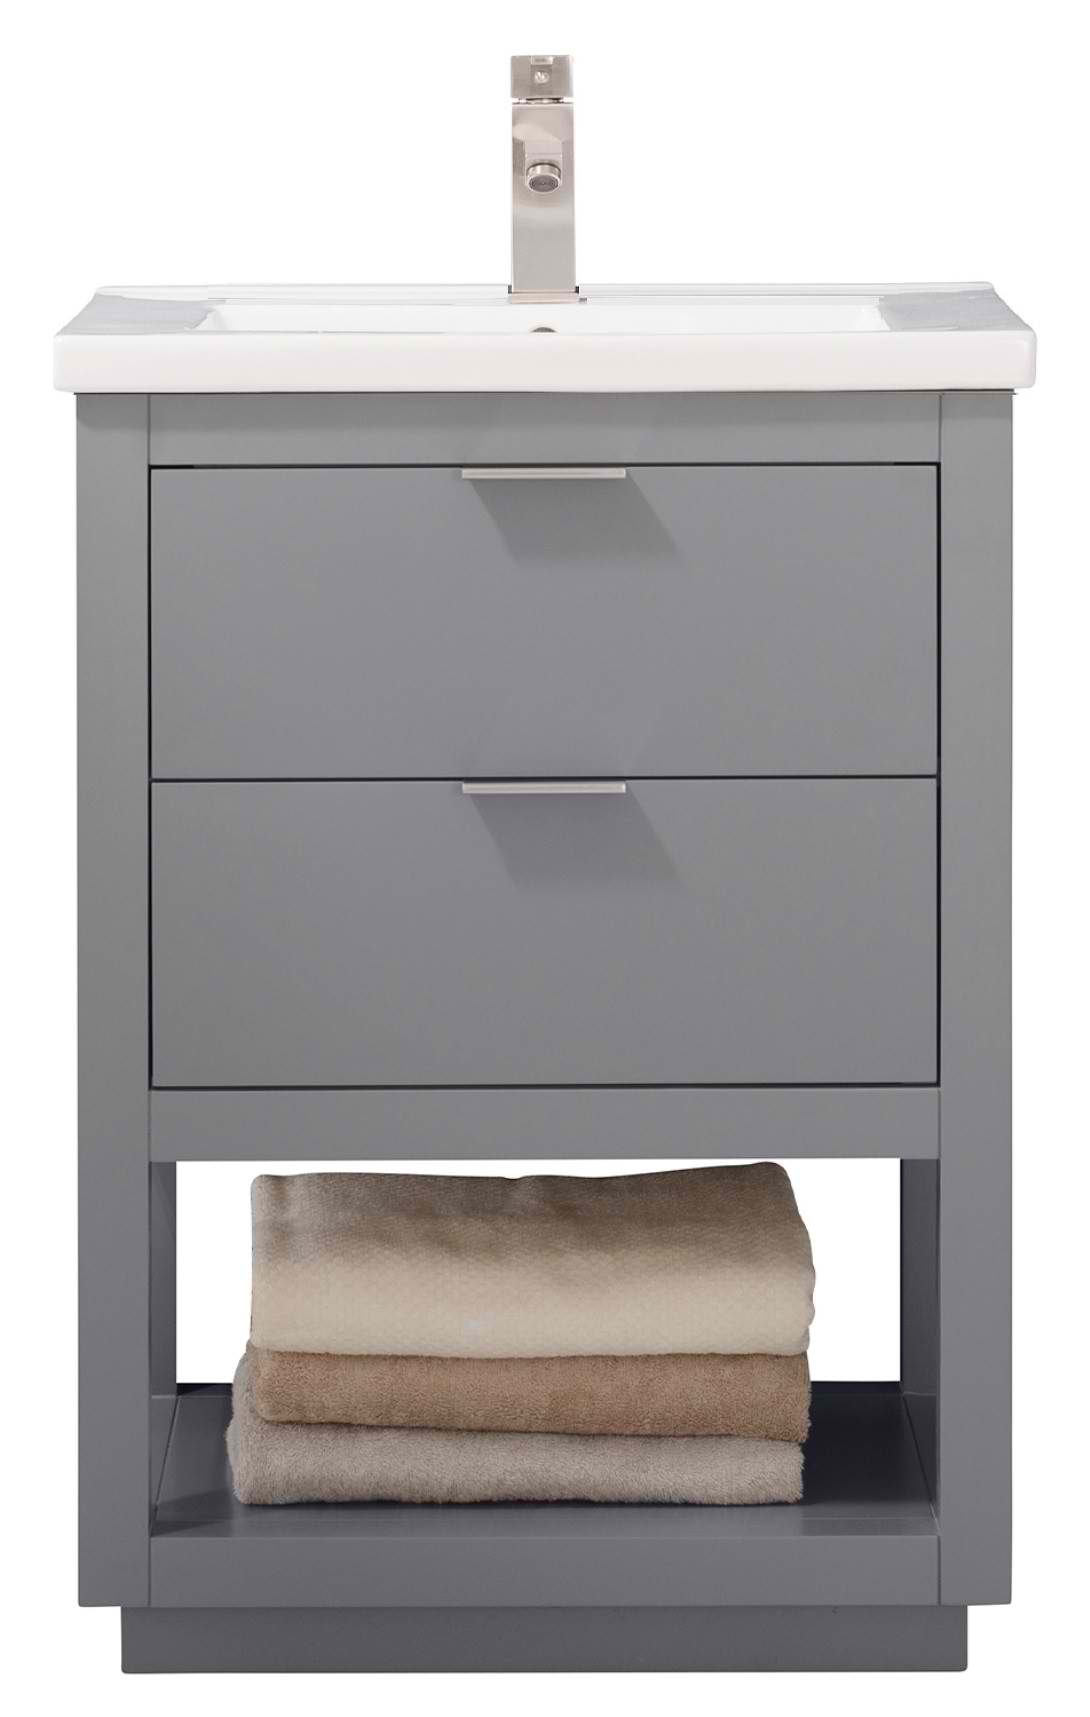 "Modern 24"" Single Sink Vanity with Porcelain Integrated Counterop and Sink in Gray Finish"